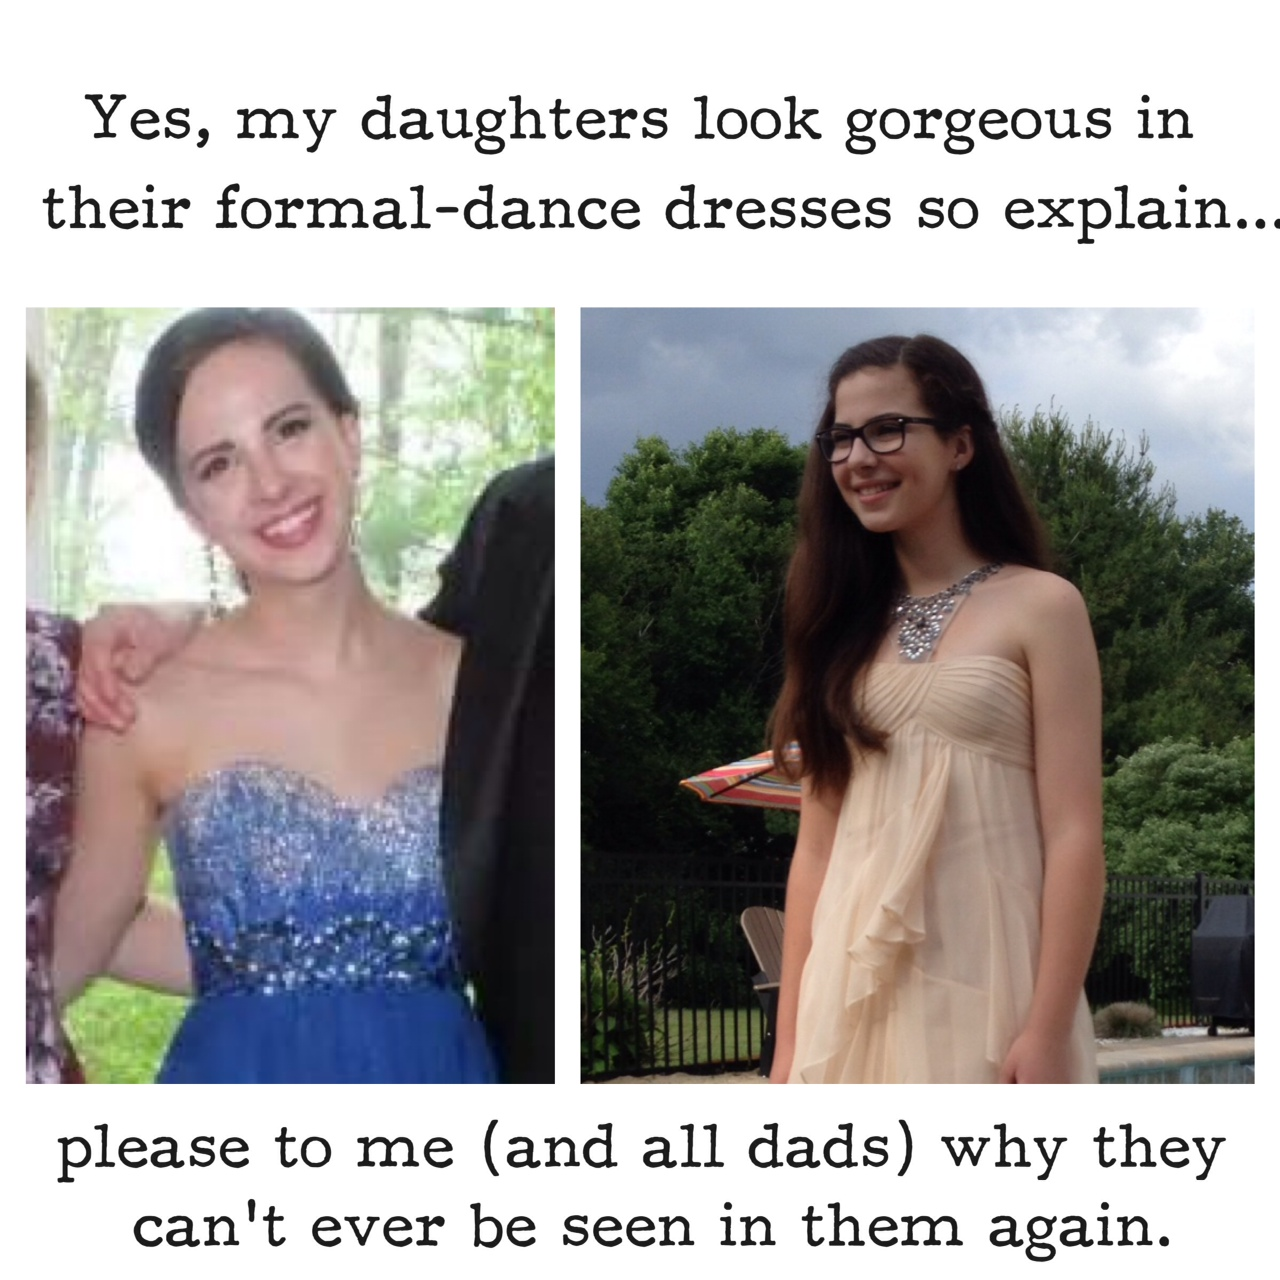 Daughters in big-occasion dresses